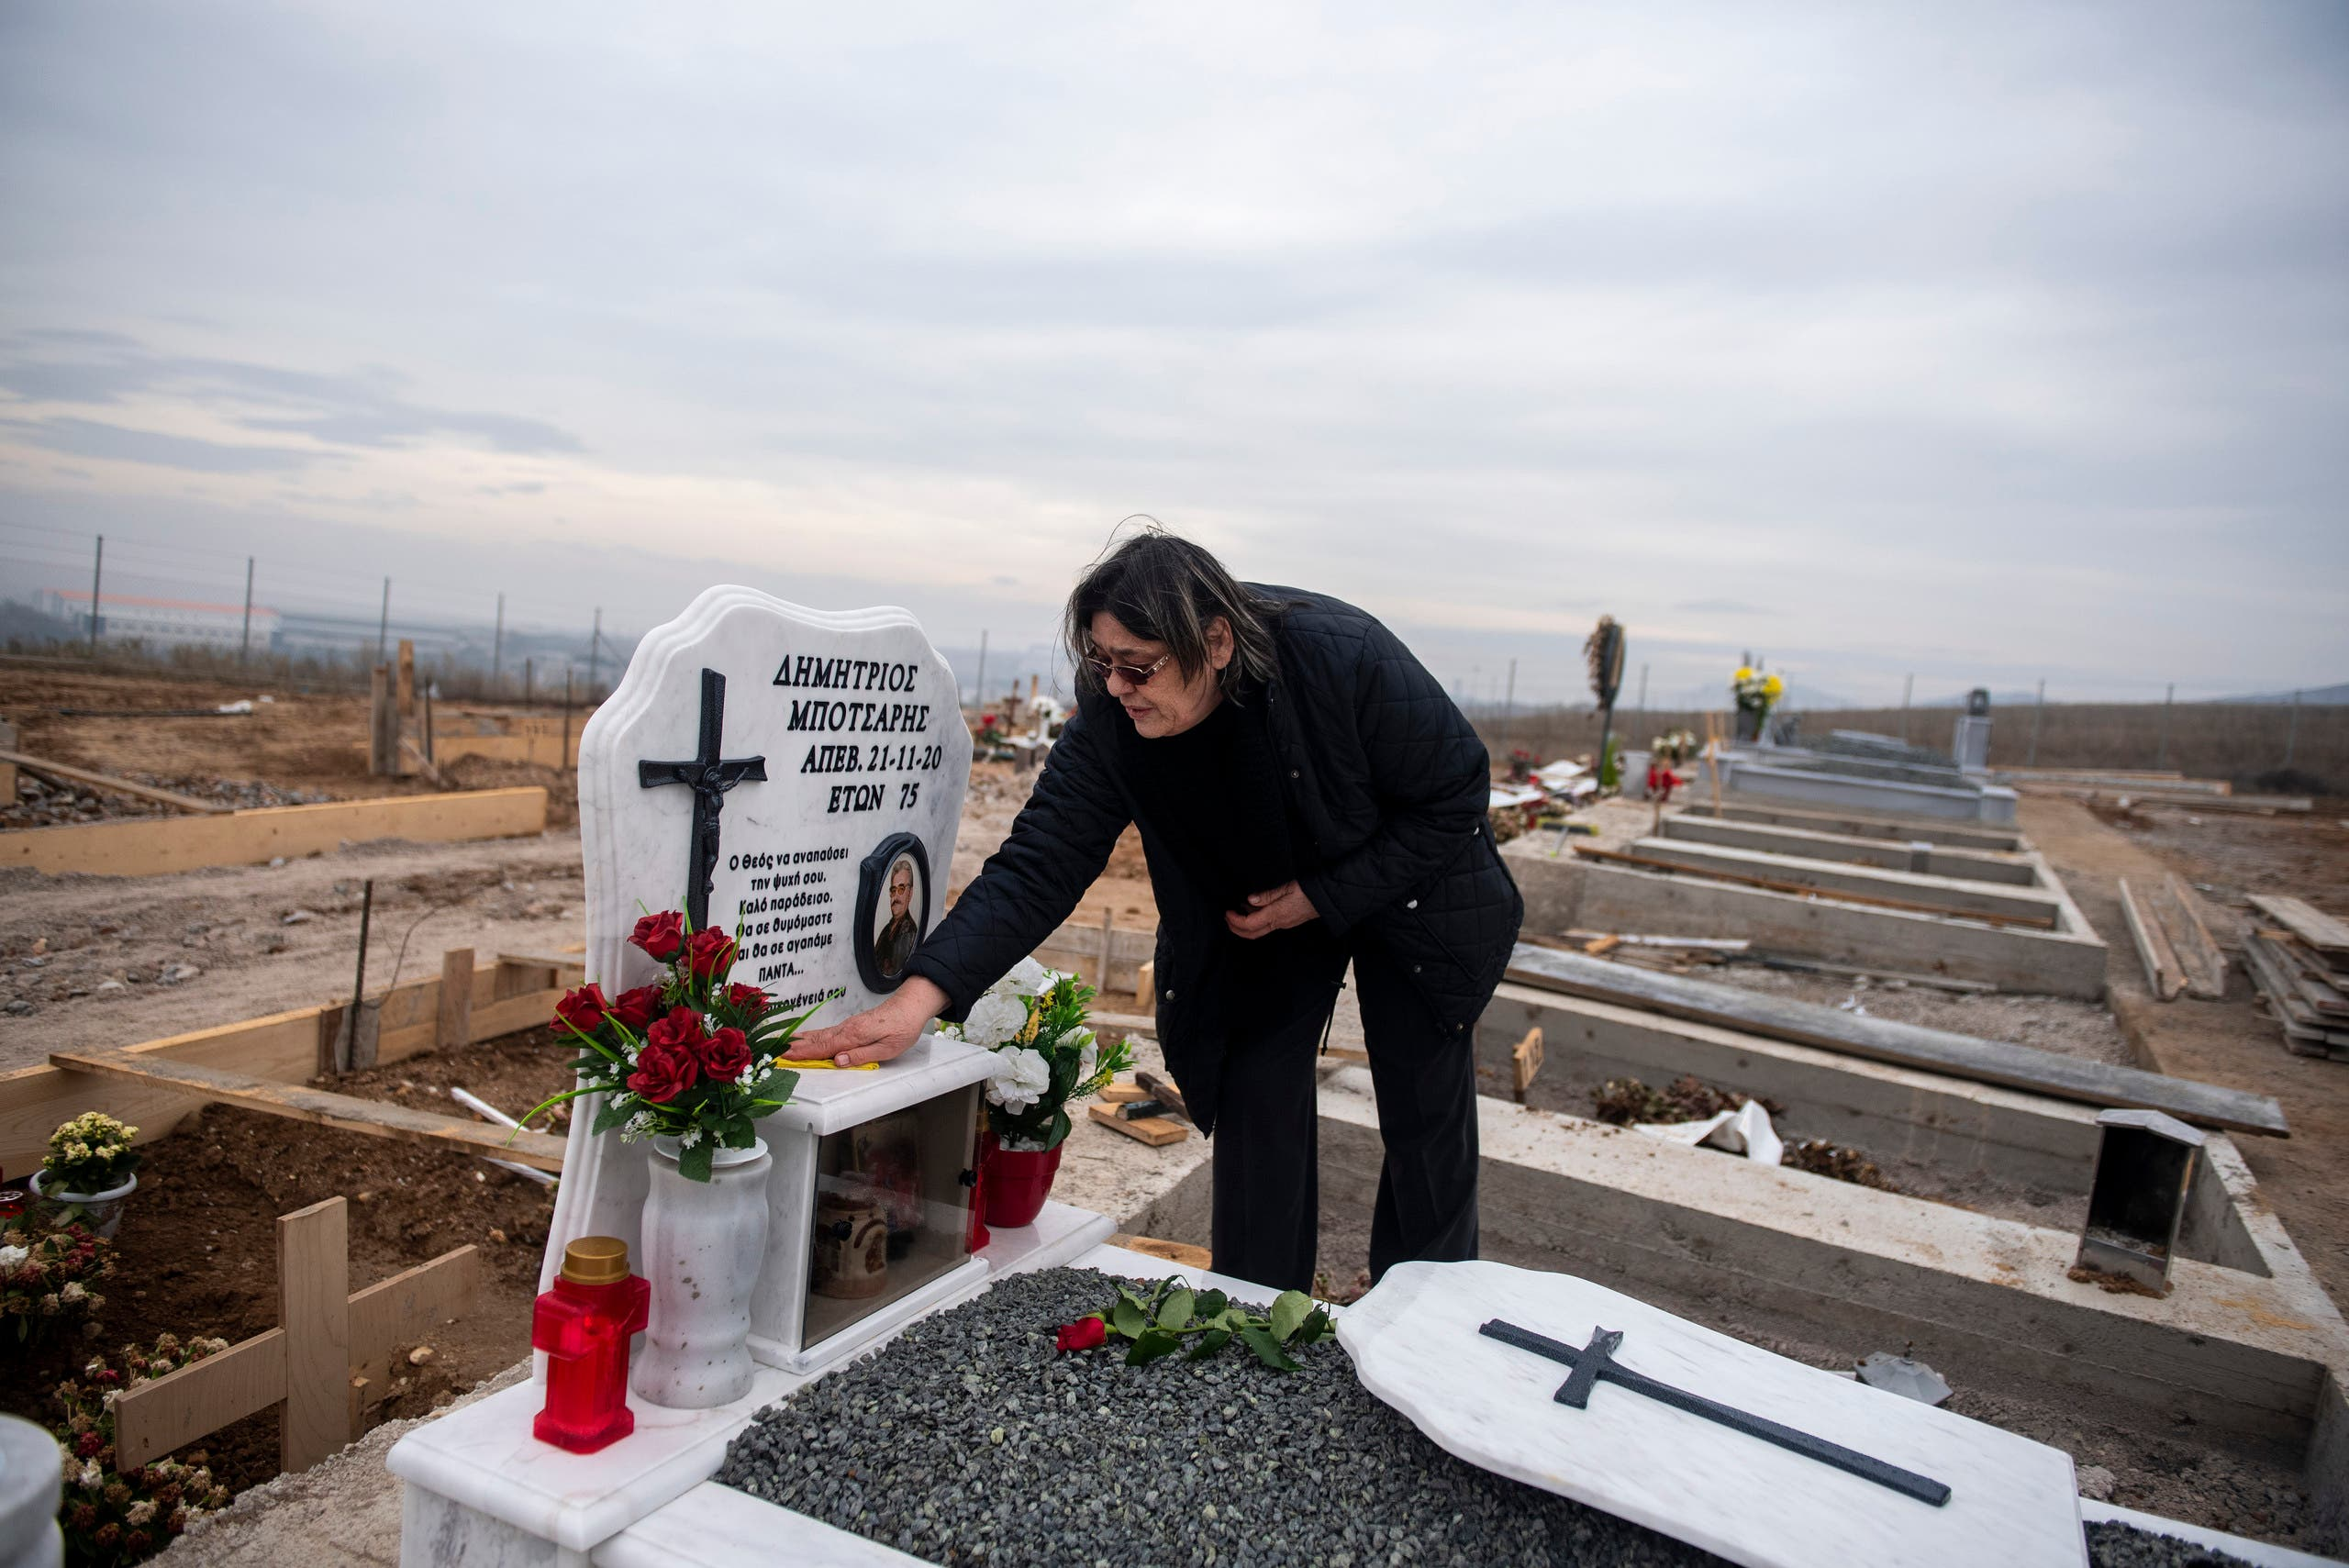 69 year-old Chrisanthi Botsari cleans the grave of her husband in a cemetery set up for victims of COVID-19, at the northern city of Thessaloniki, Greece. (AP)